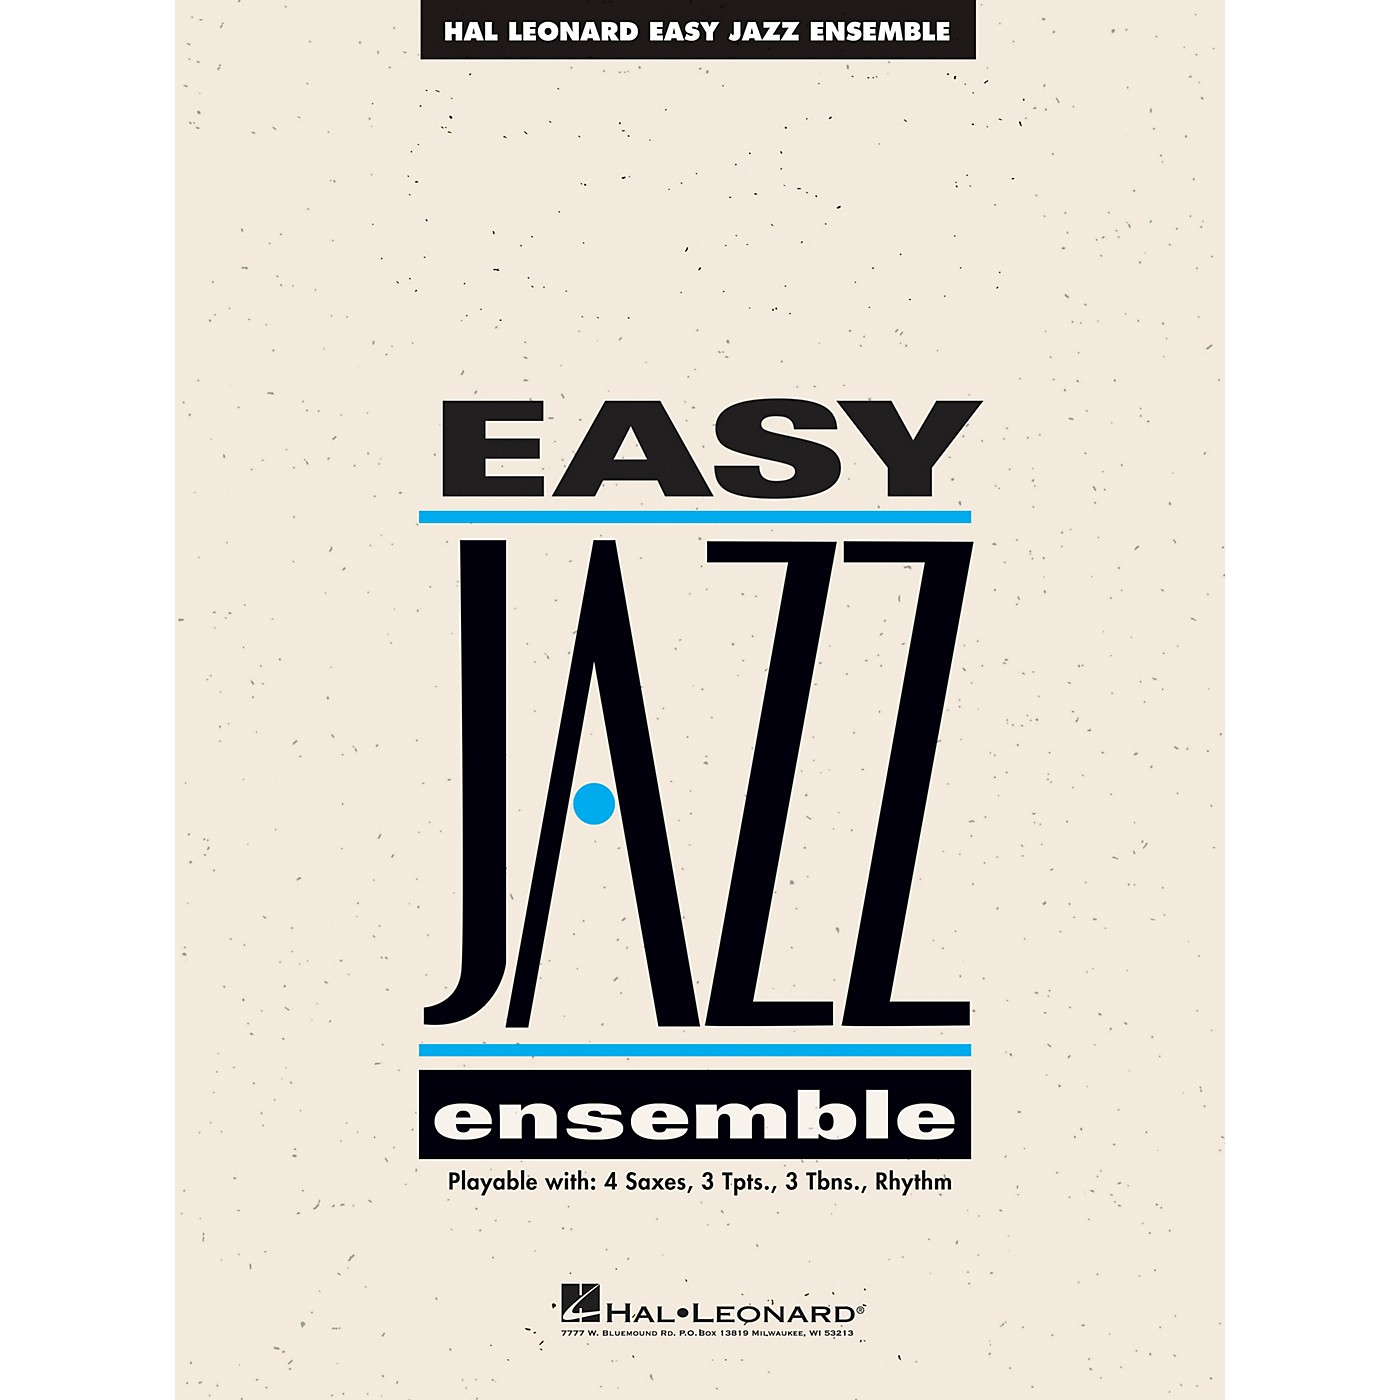 Hal Leonard The Best of Easy Jazz - Piano (15 Selections from the Easy Jazz Ensemble Series) Jazz Band Level 2 thumbnail